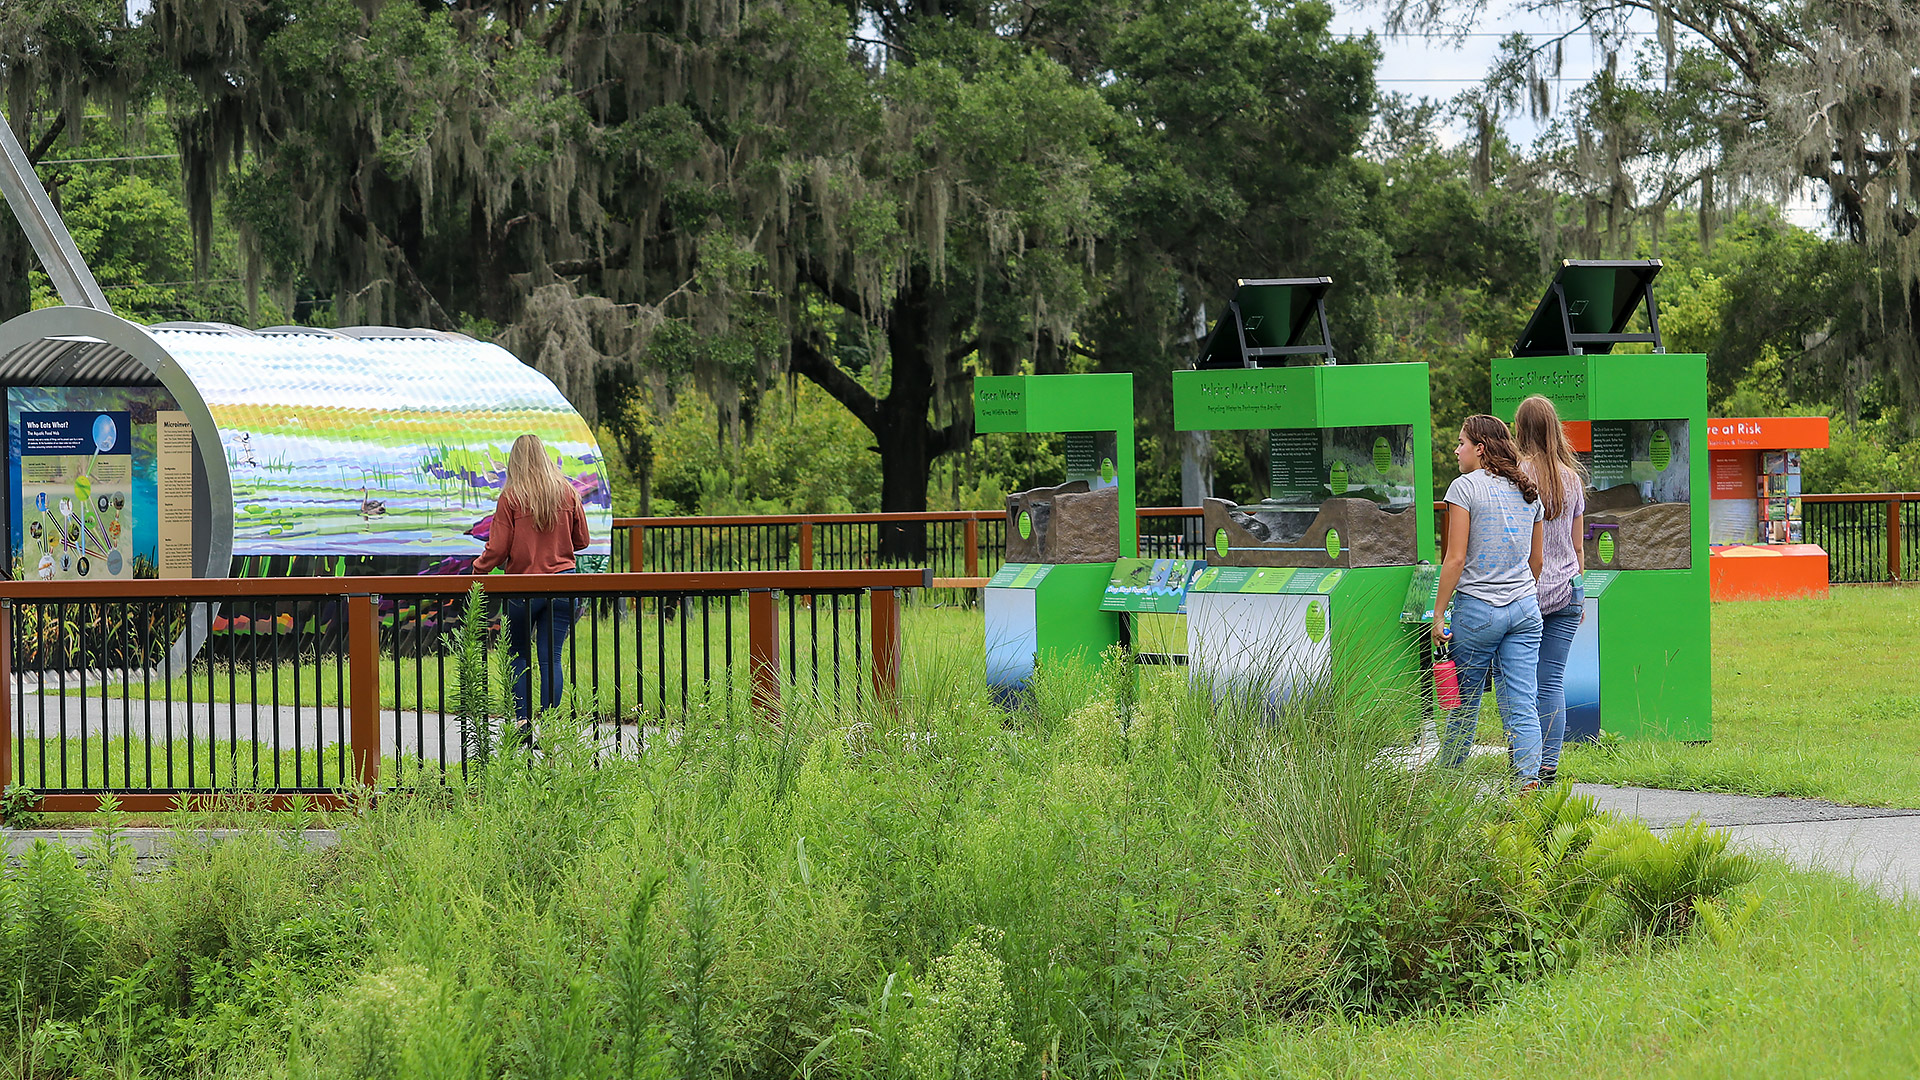 People visiting the Ocala Wetlands Recharge Park